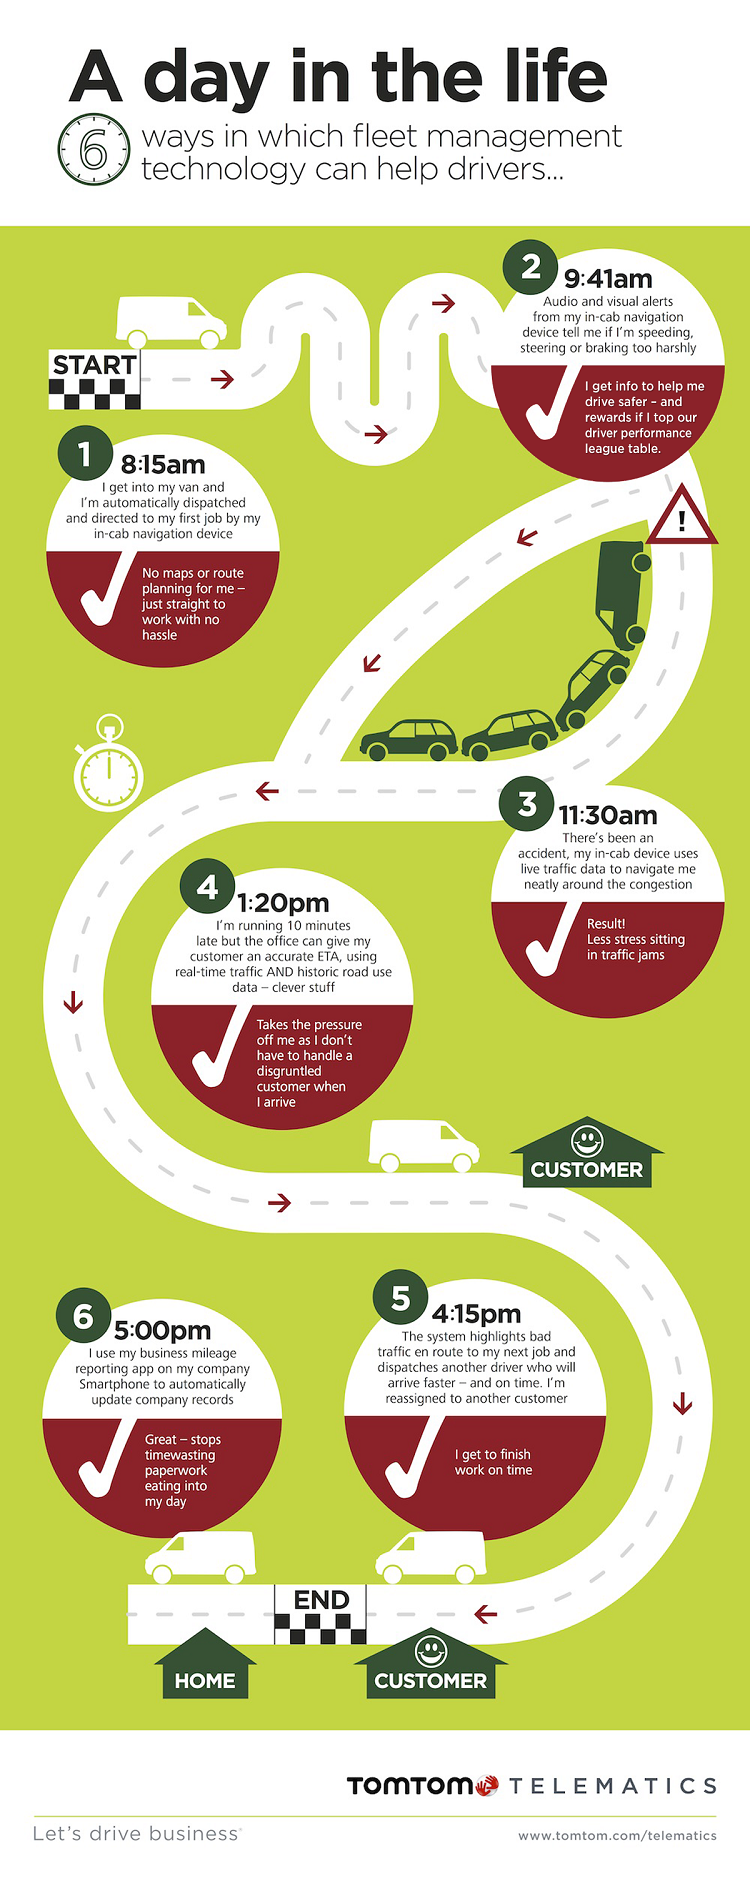 A Day in the Life … 6 Ways in Which Fleet Management Technology Can Make Your Drivers' Lives Easier